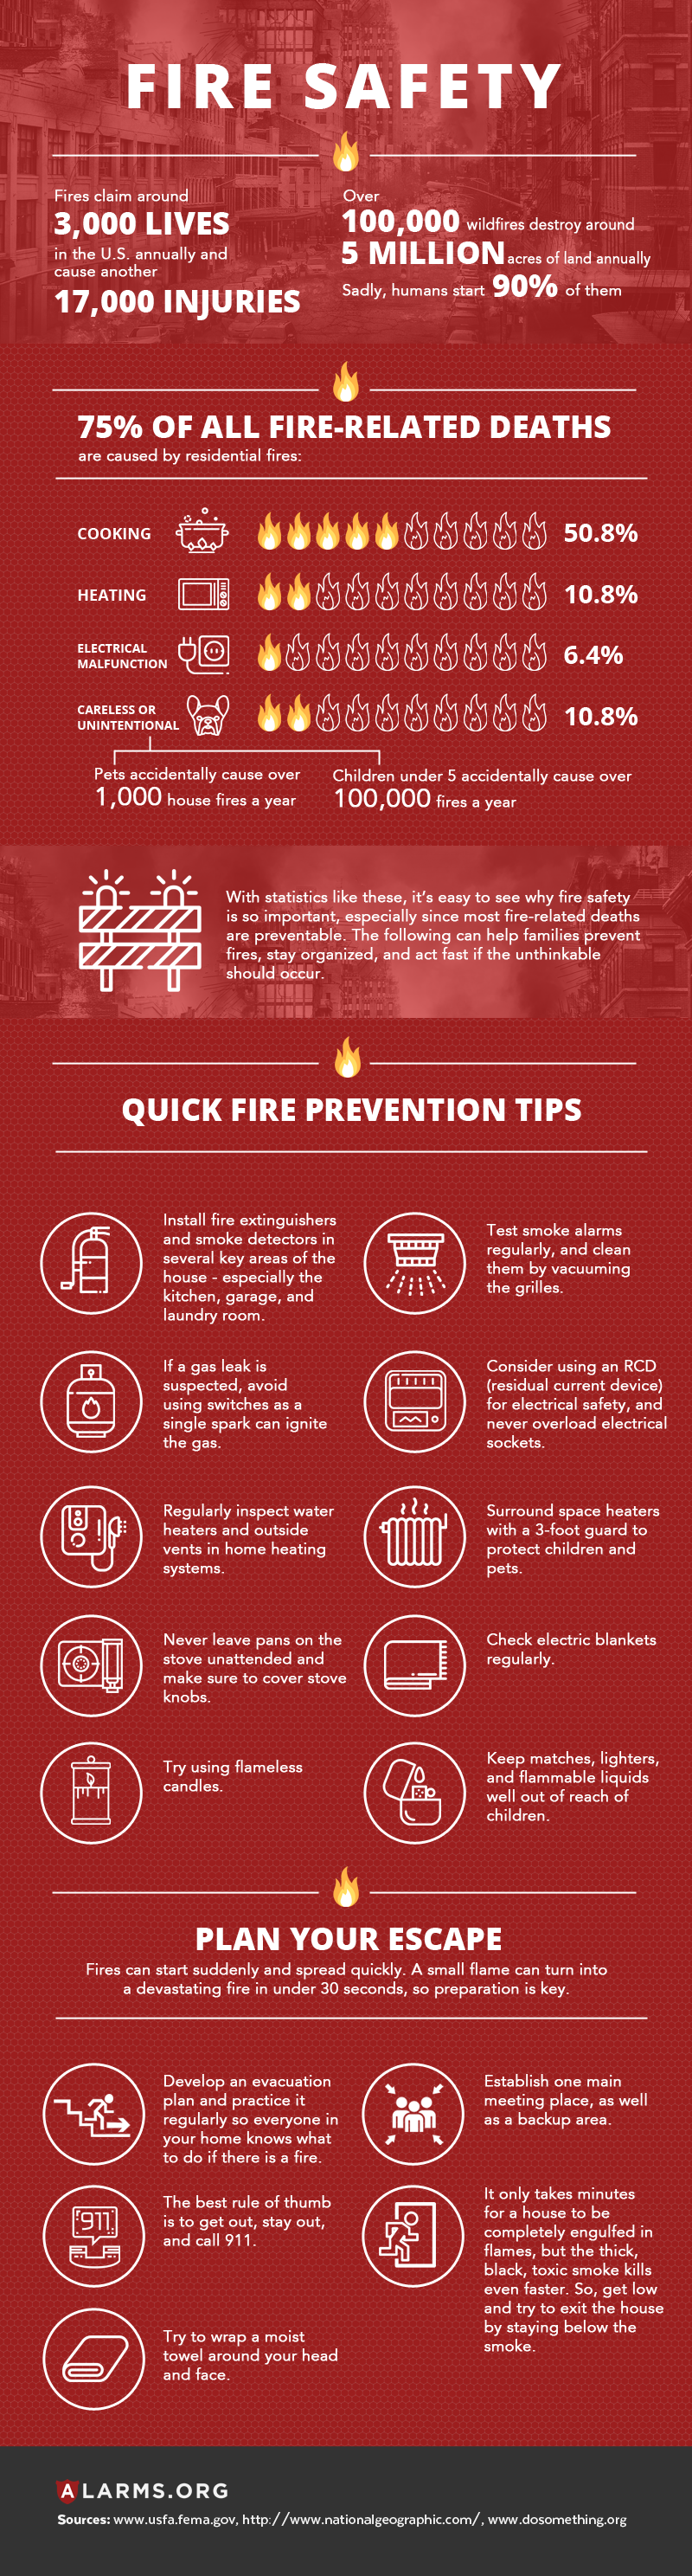 Fire Safety Infographic - Sacramento CA - A to Z Chimney Services